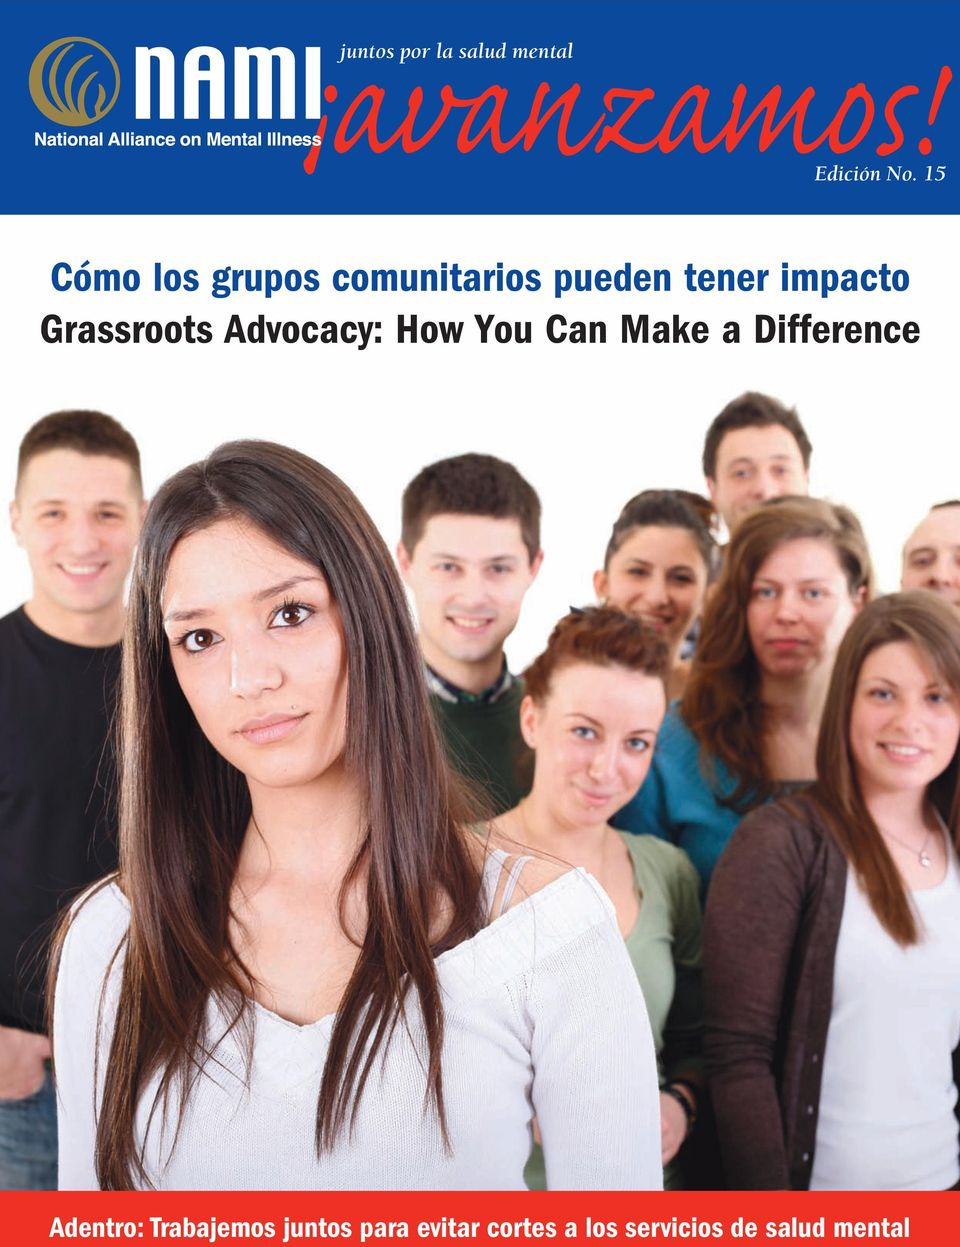 Grassroots Advocacy: How You Can Make a Difference